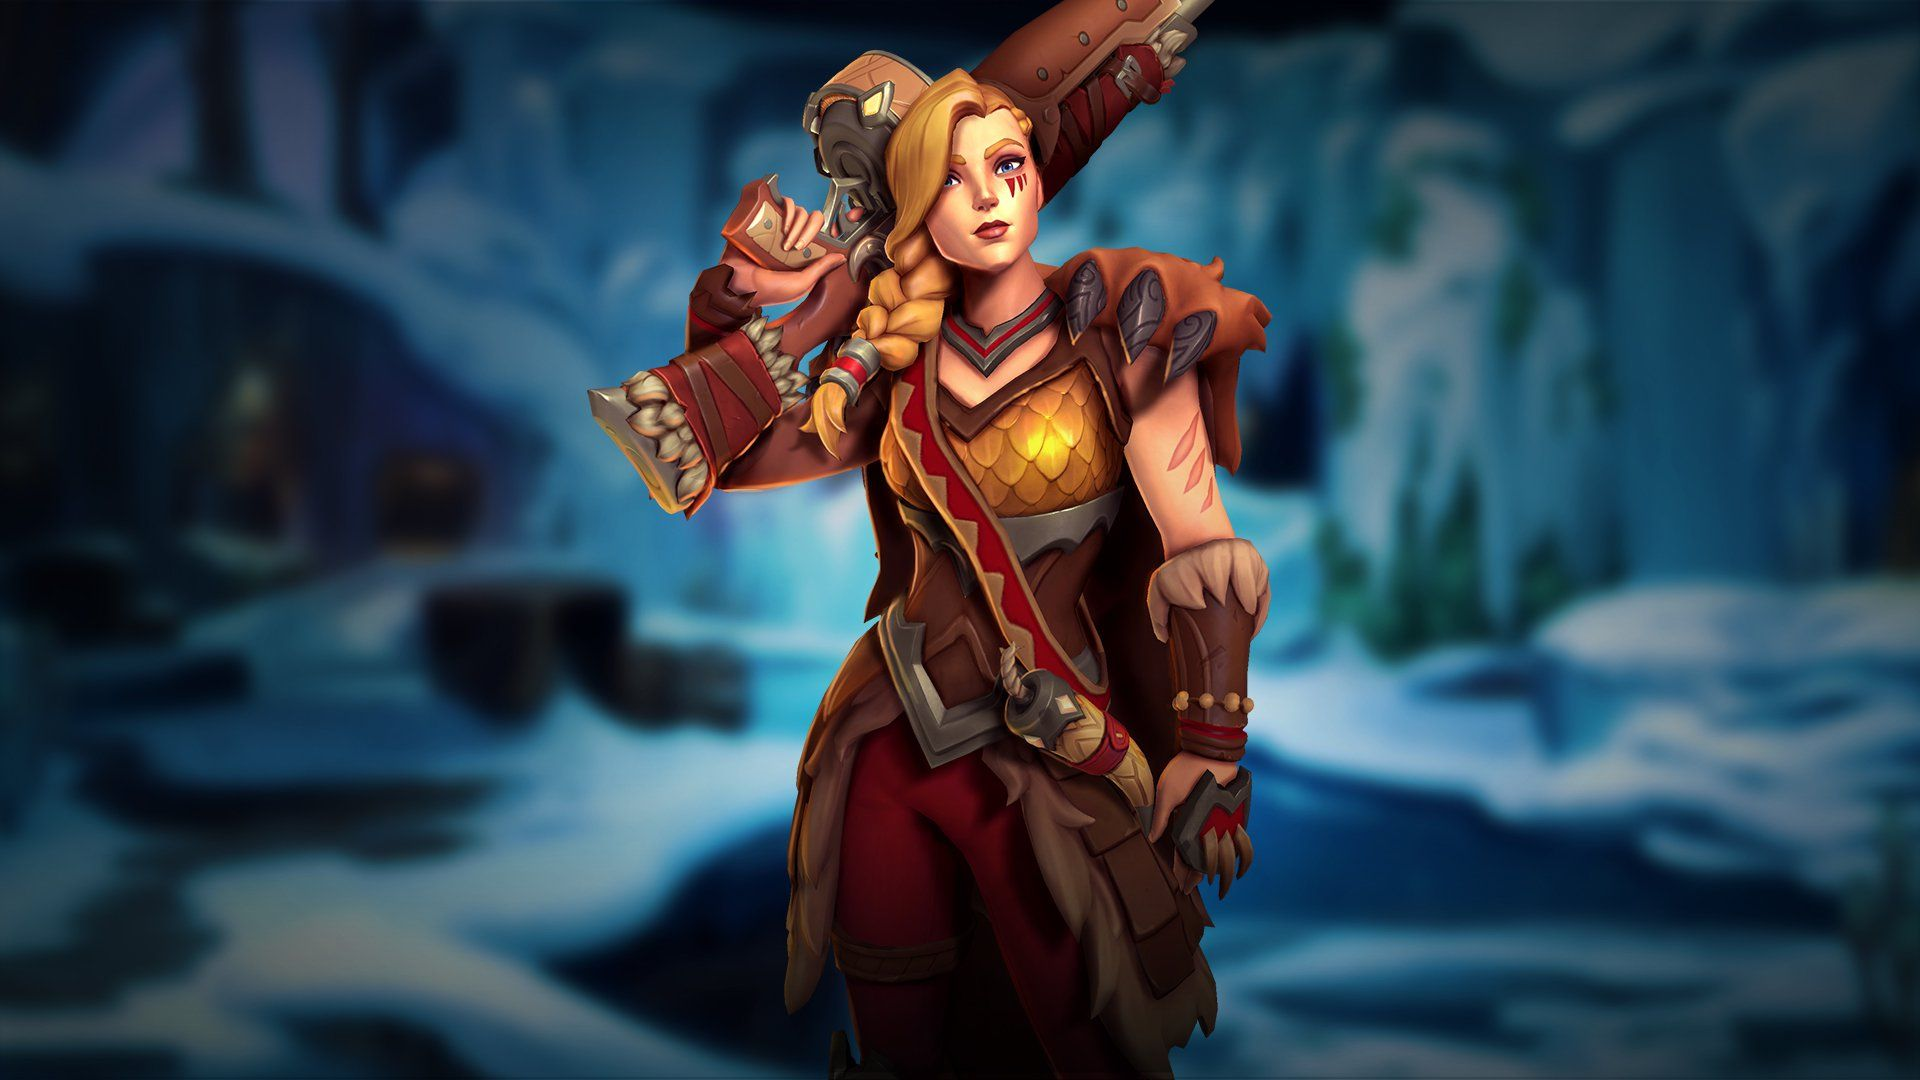 Paladins Adds New Champion in Latest Update | Paladin, Paladins new champion, Paladins champions